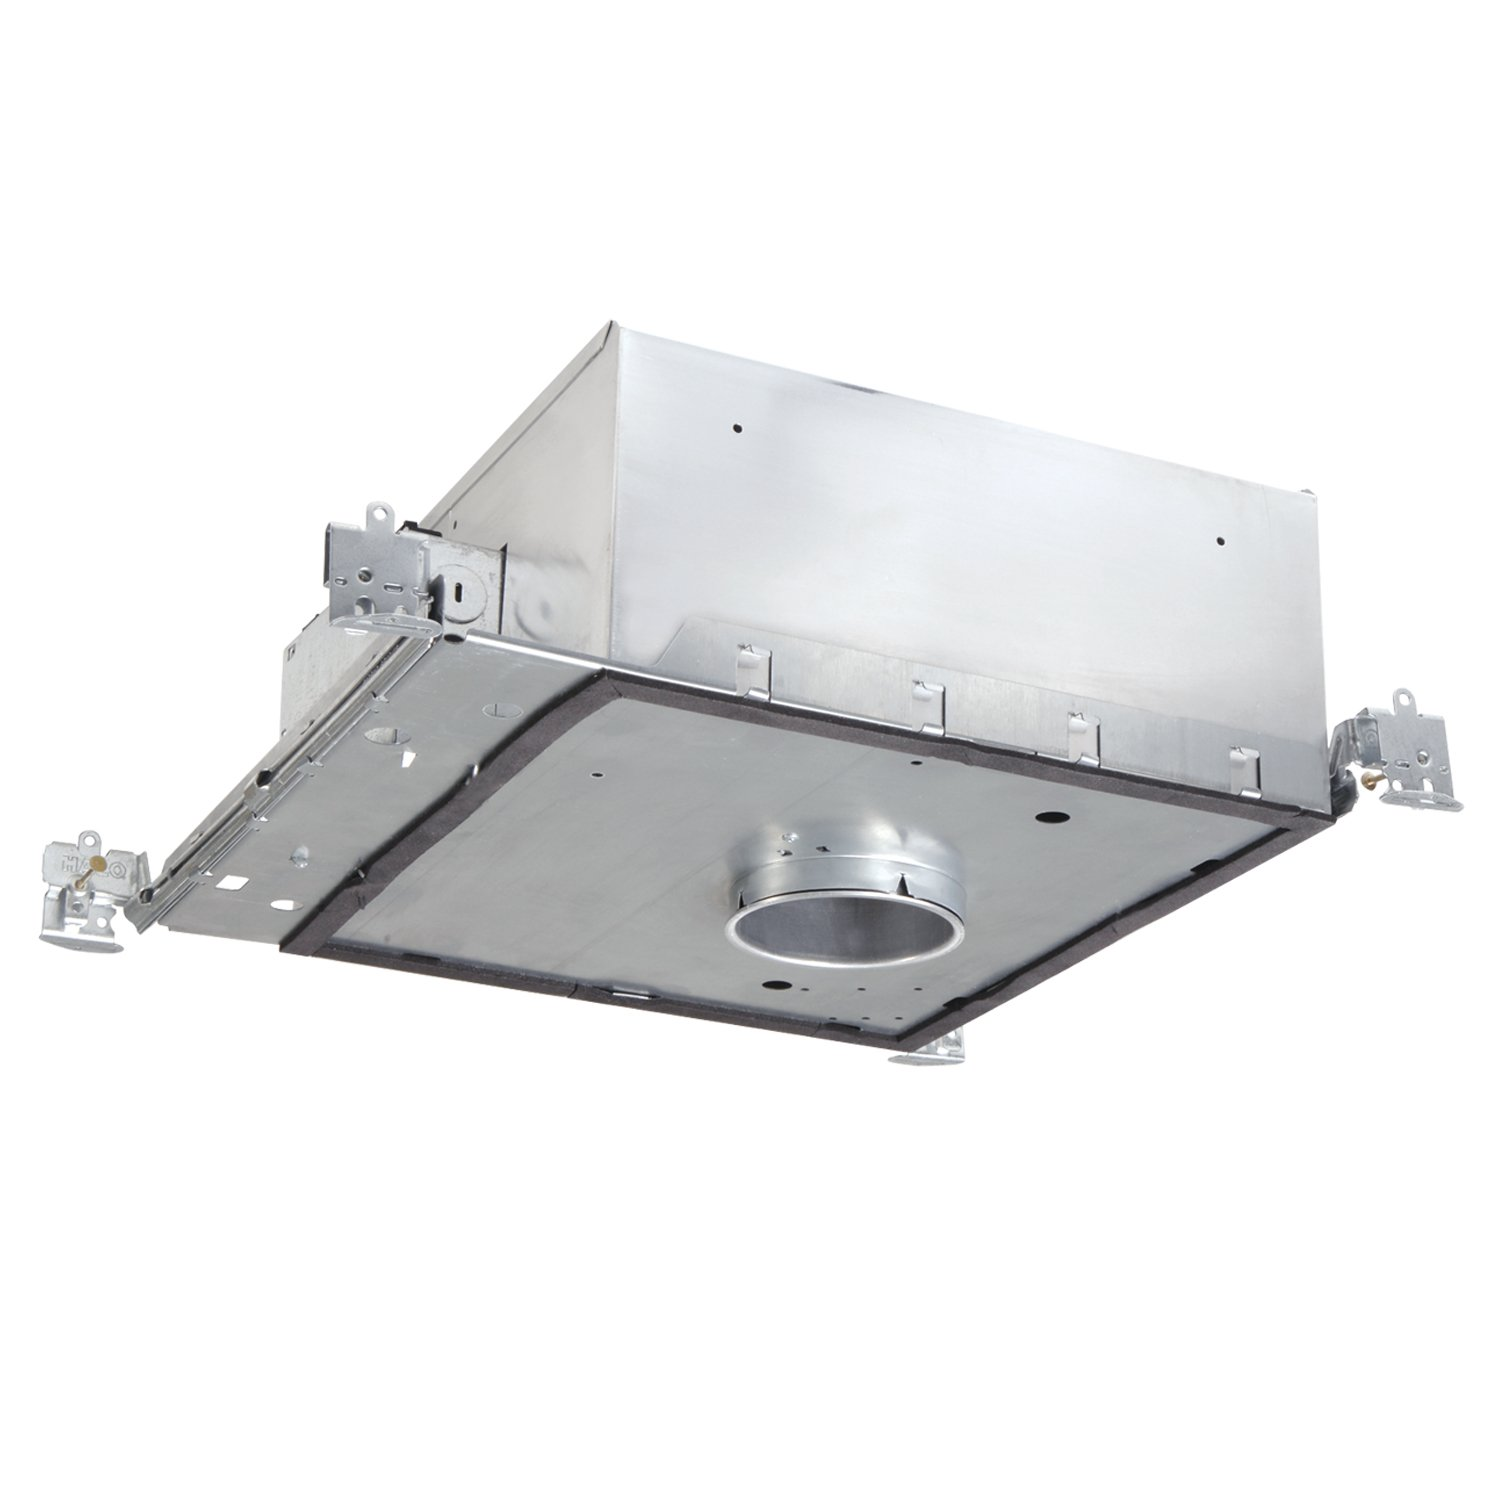 Halo recessed h36icat 3 inch housing ic air tite shallow ceiling 120 halo recessed h36icat 3 inch housing ic air tite shallow ceiling 120 volt line voltage recessed light fixture housings amazon audiocablefo